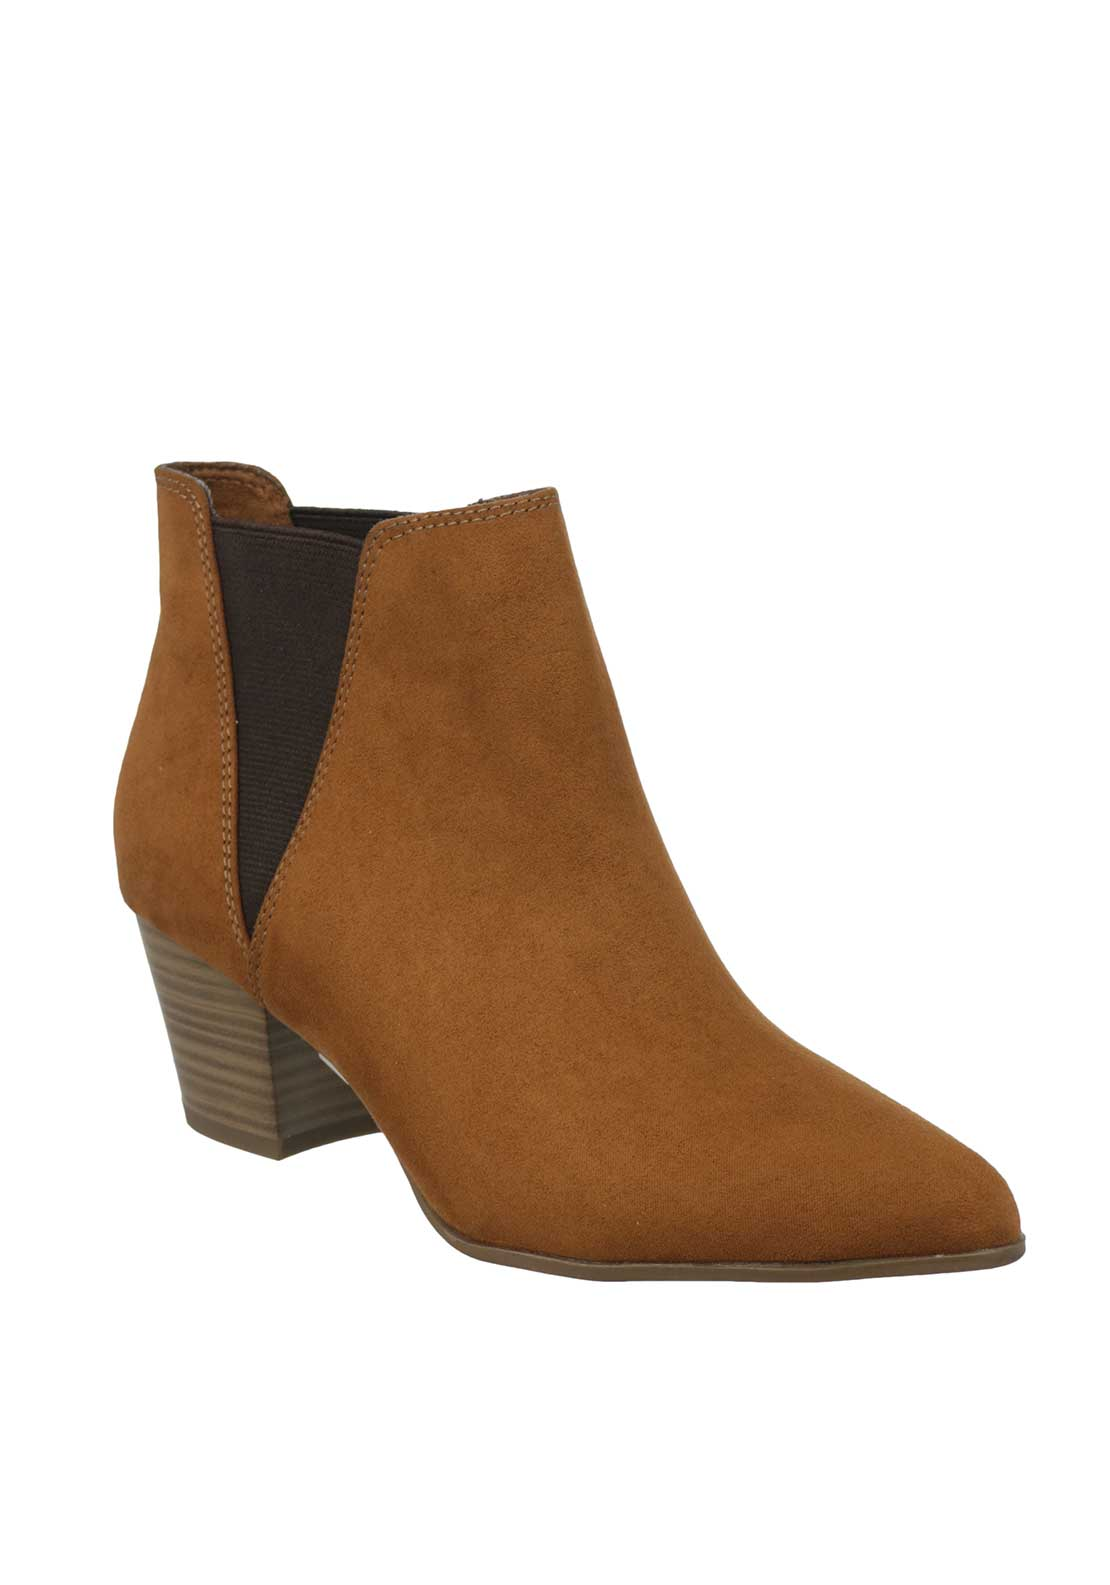 Tamaris Pointed Chelsea Ankle Boots, Tan